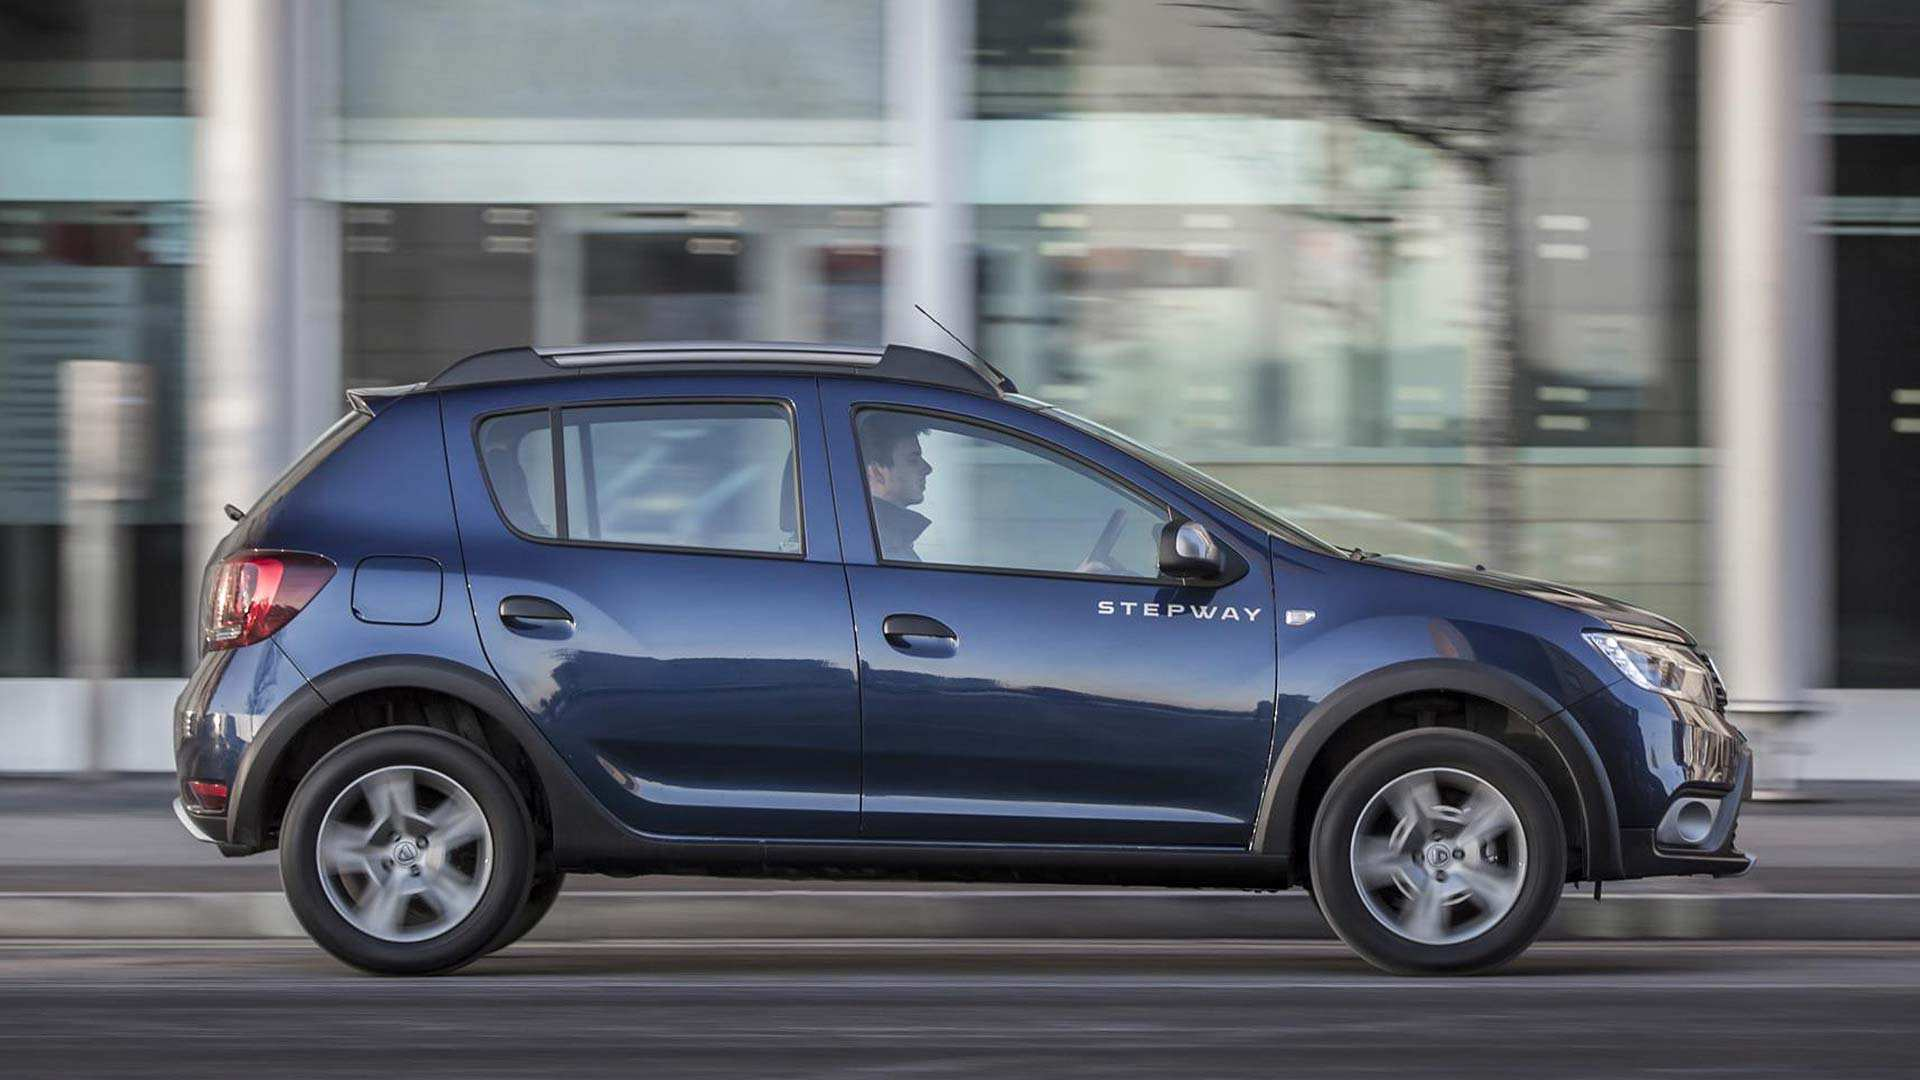 95 Great 2019 Dacia Sandero Stepway Release Date for 2019 Dacia Sandero Stepway